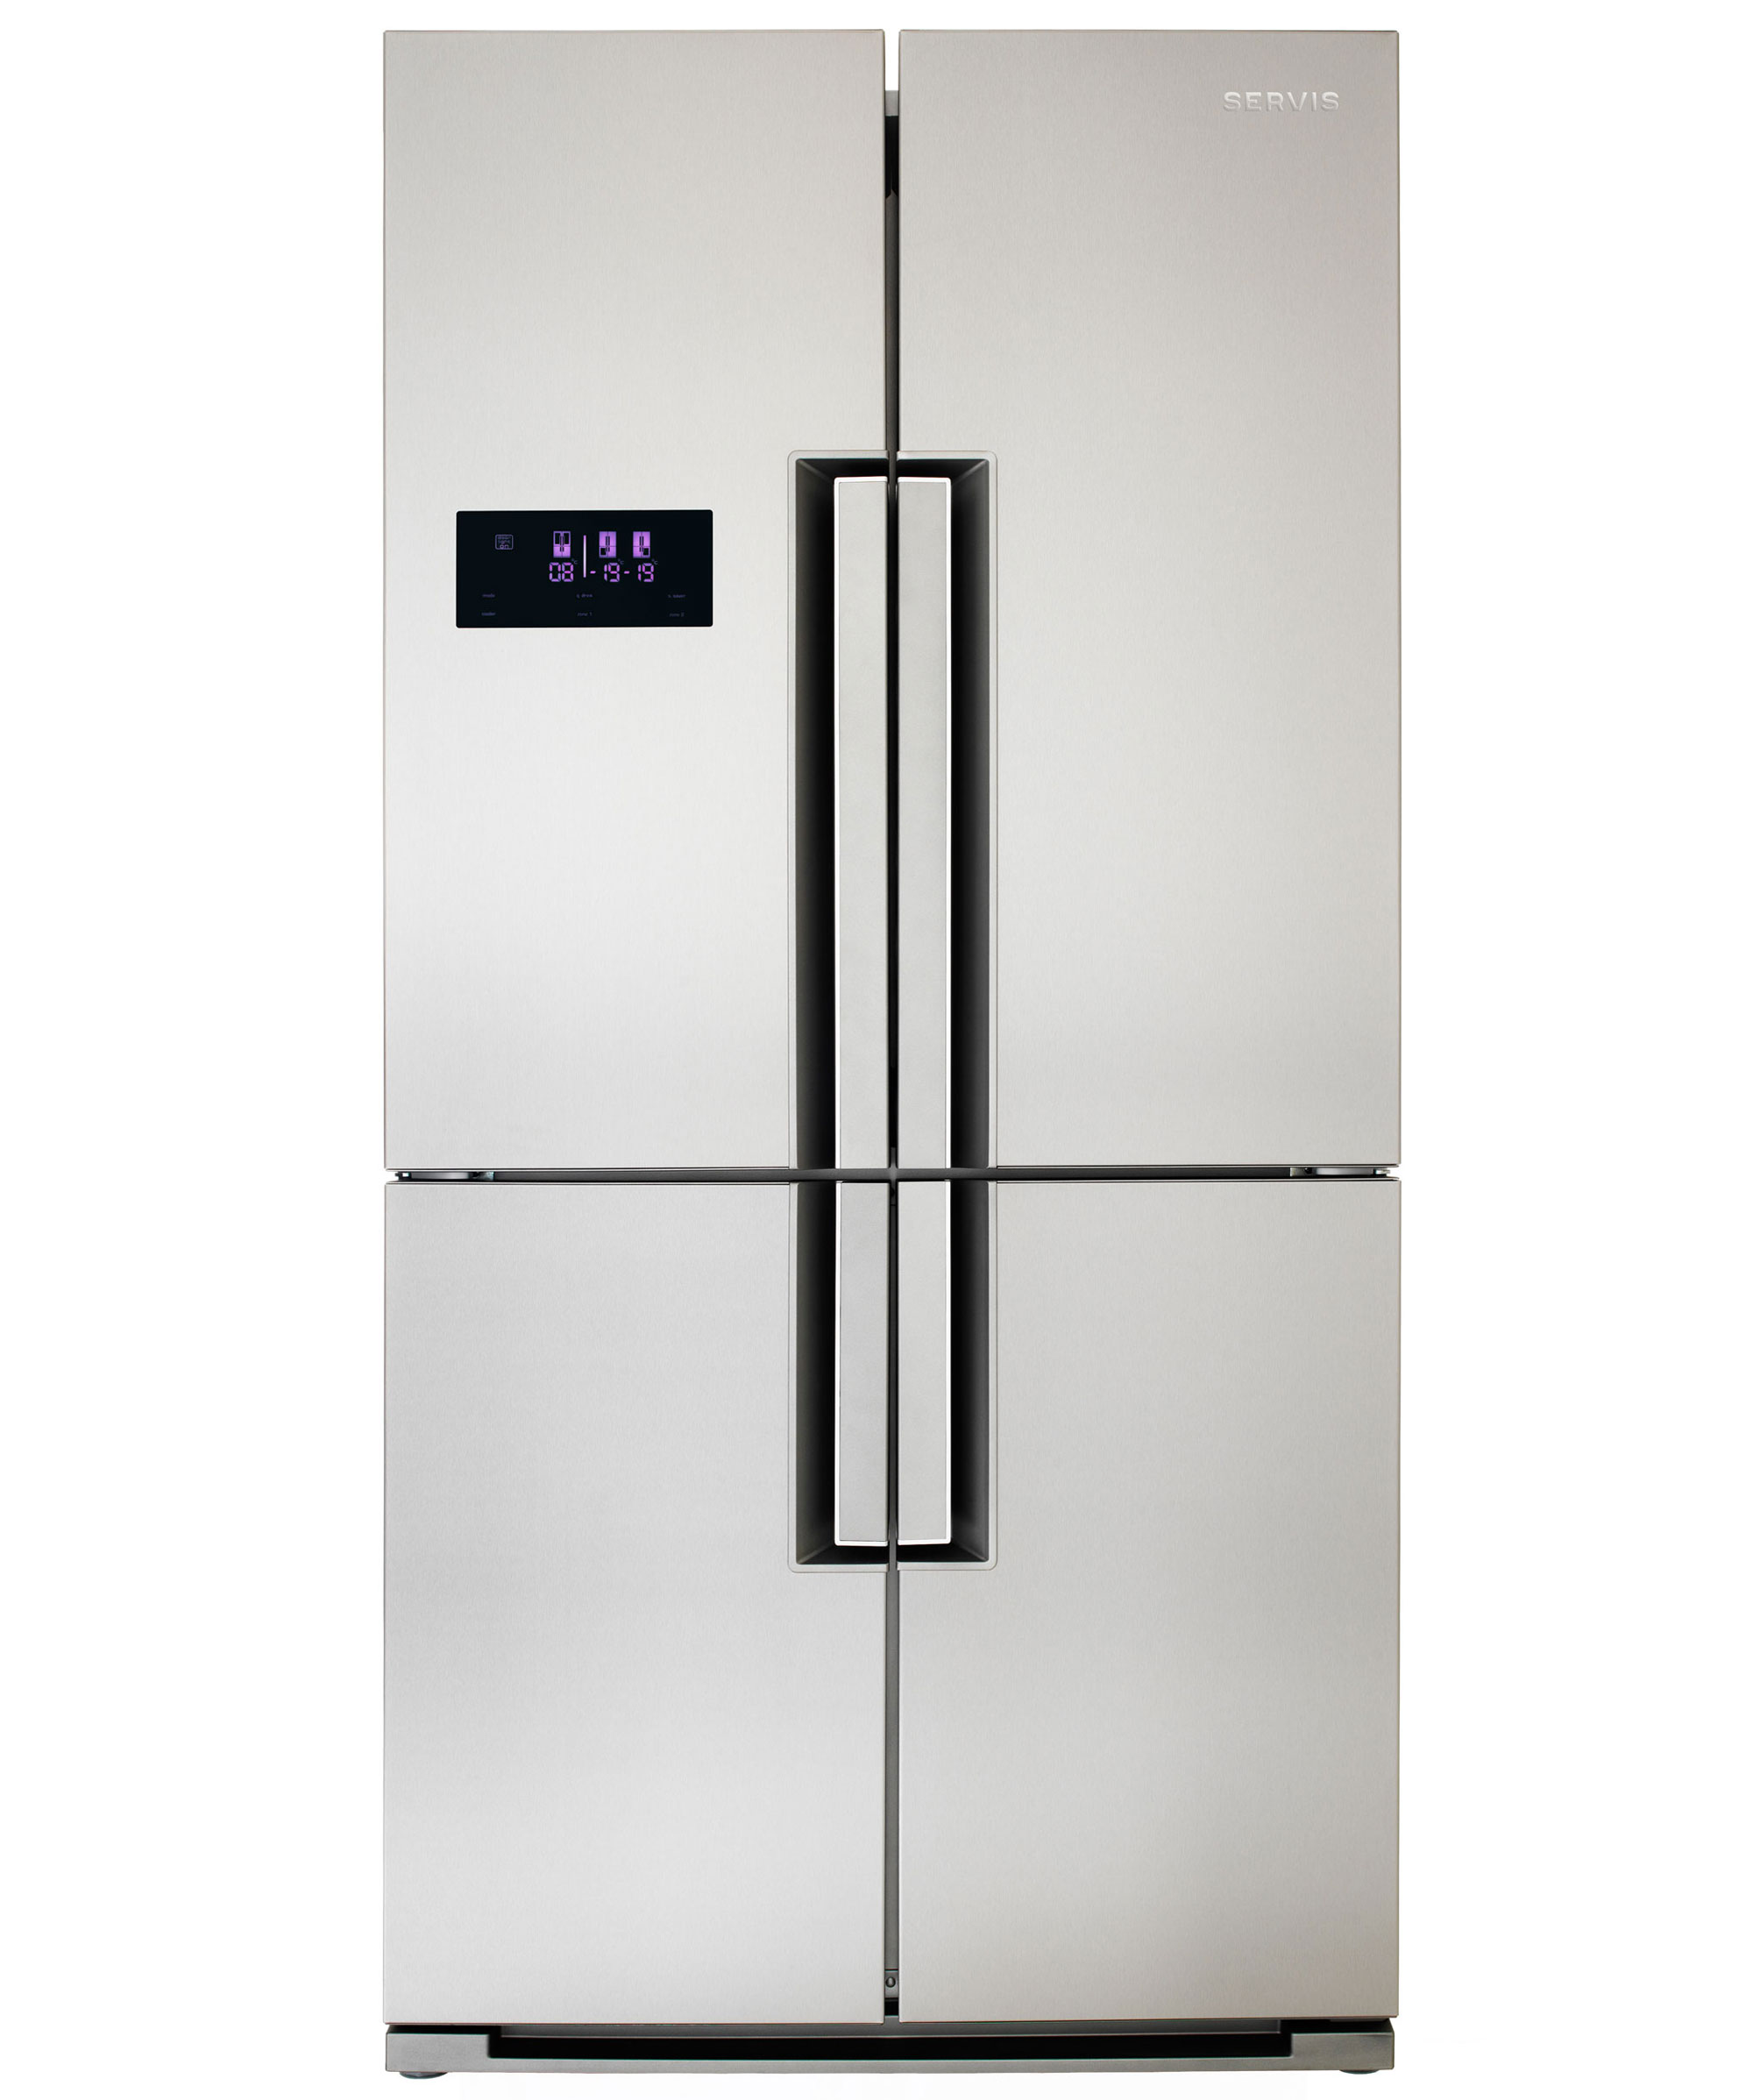 4 Door fridge freezer uk